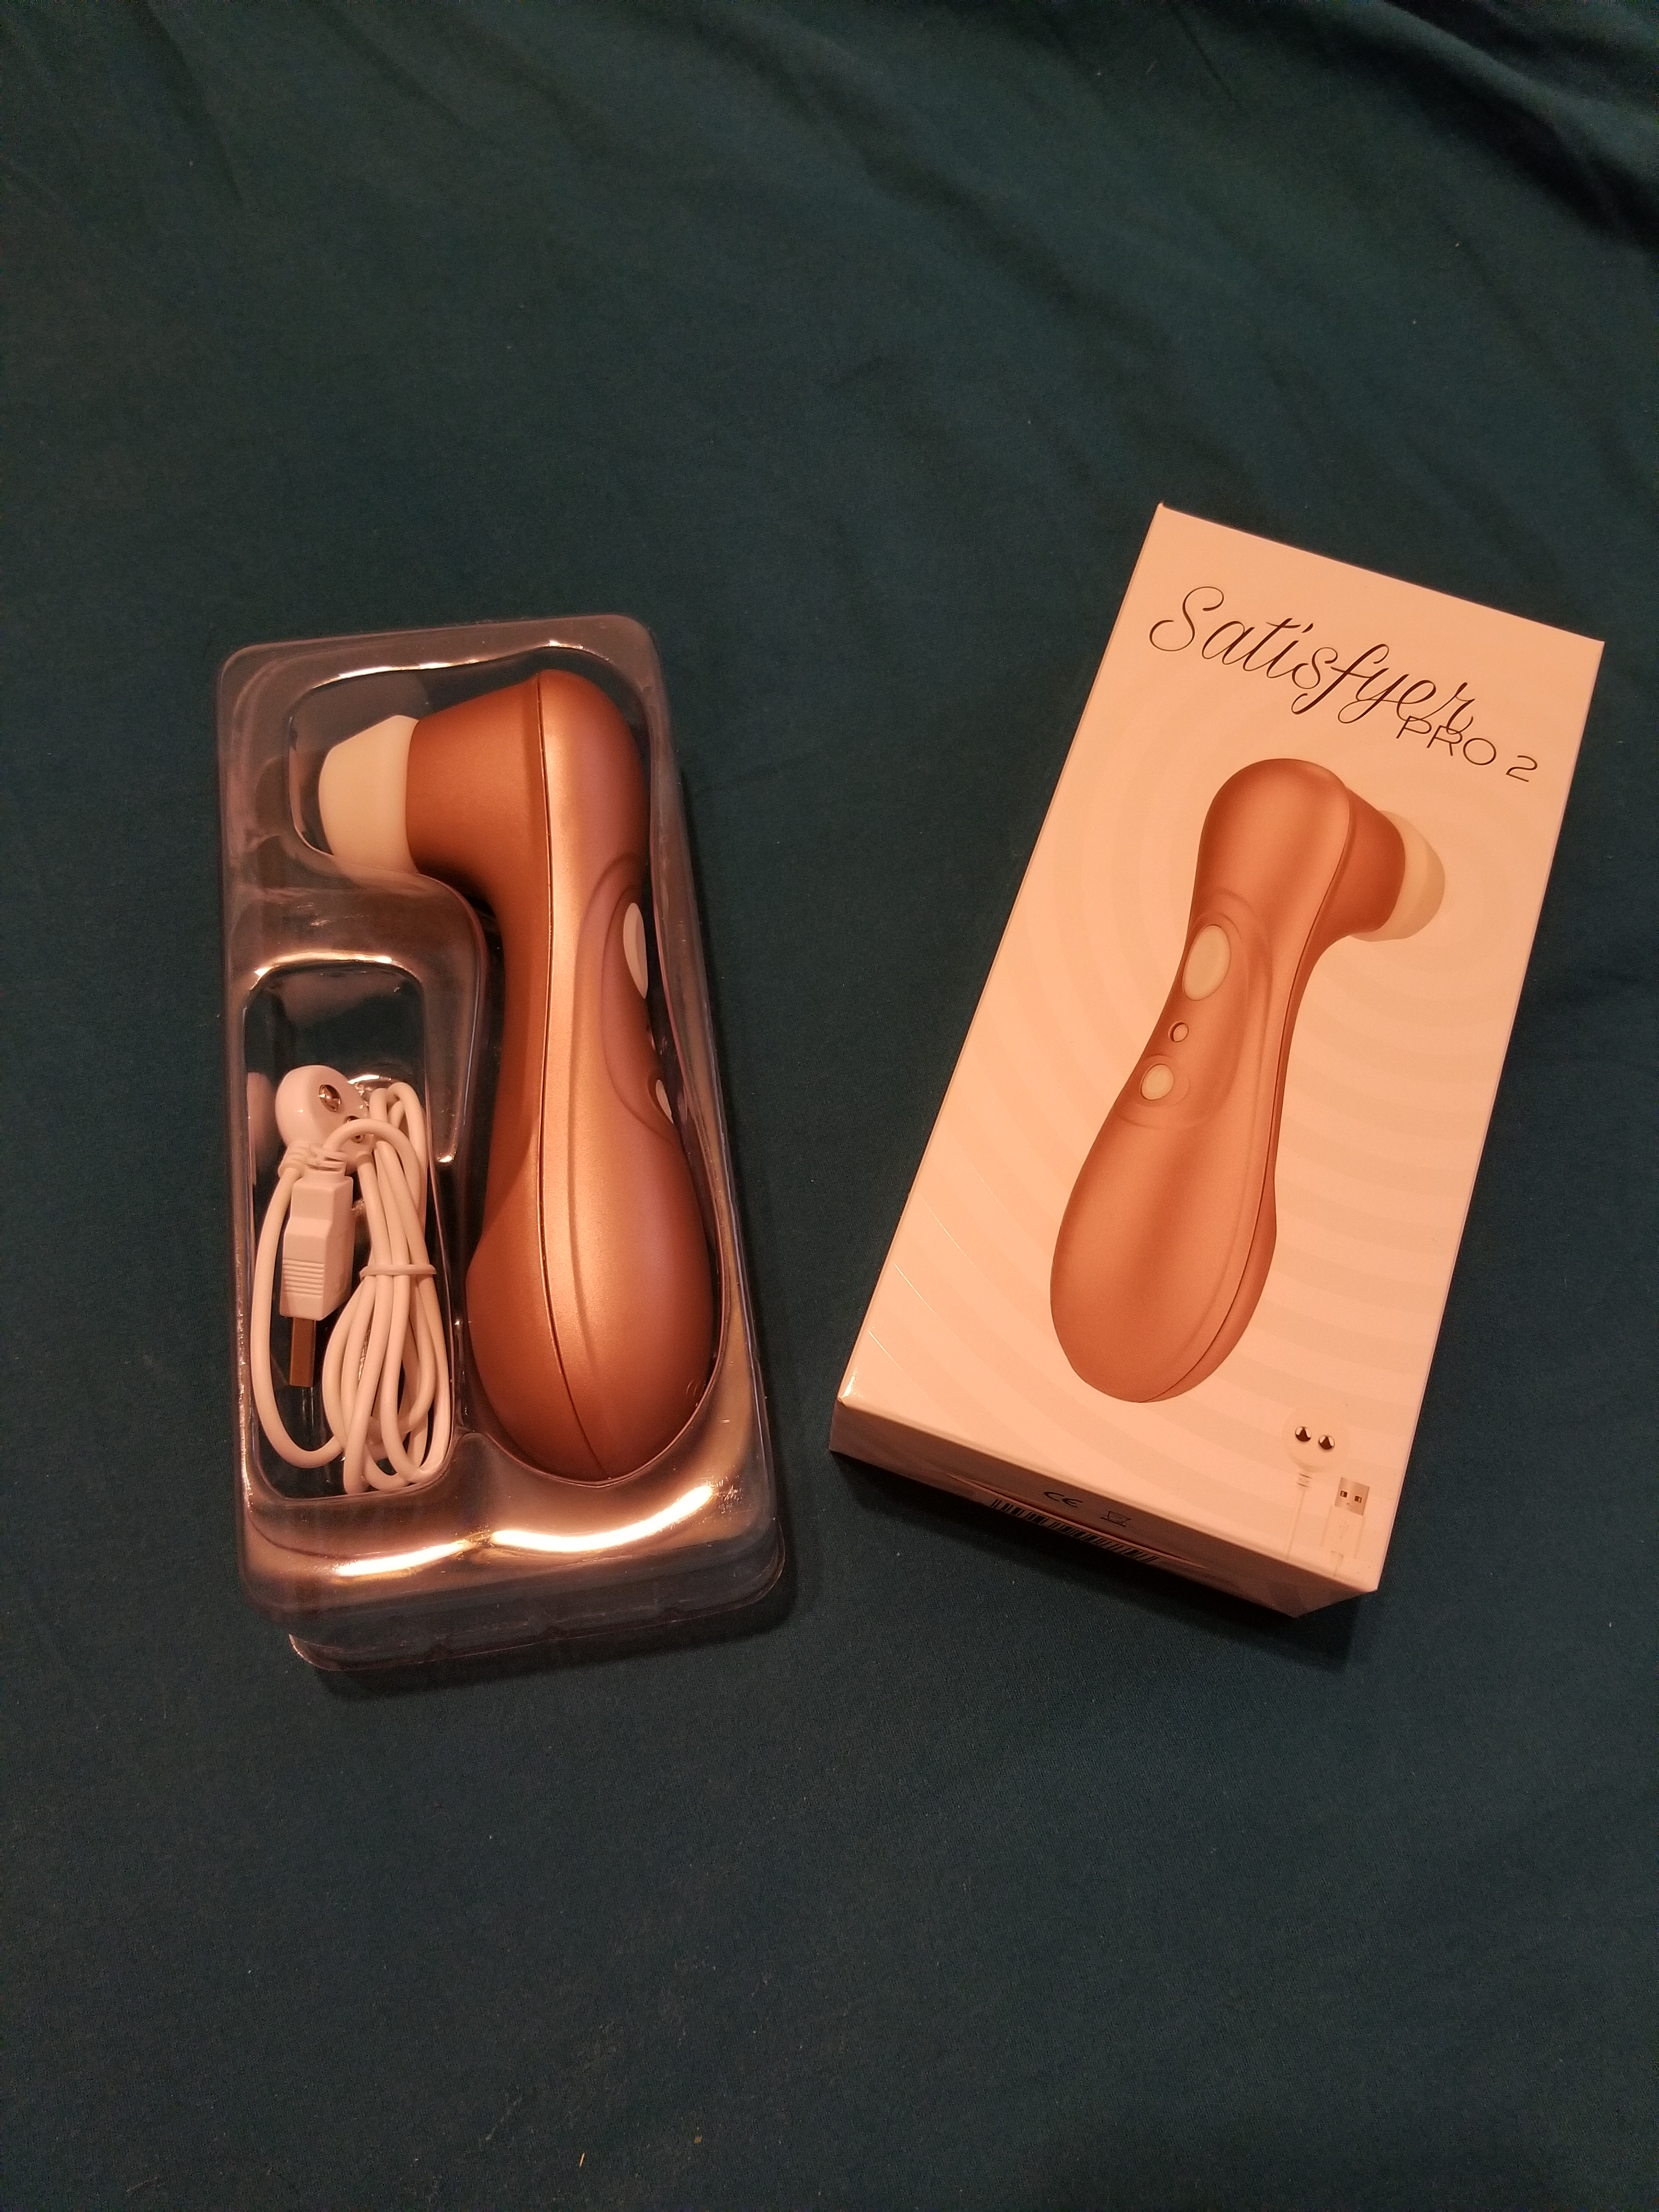 A toy that is copper in color with a white nozzle rests in a plastic cradle. A box sits next to it.